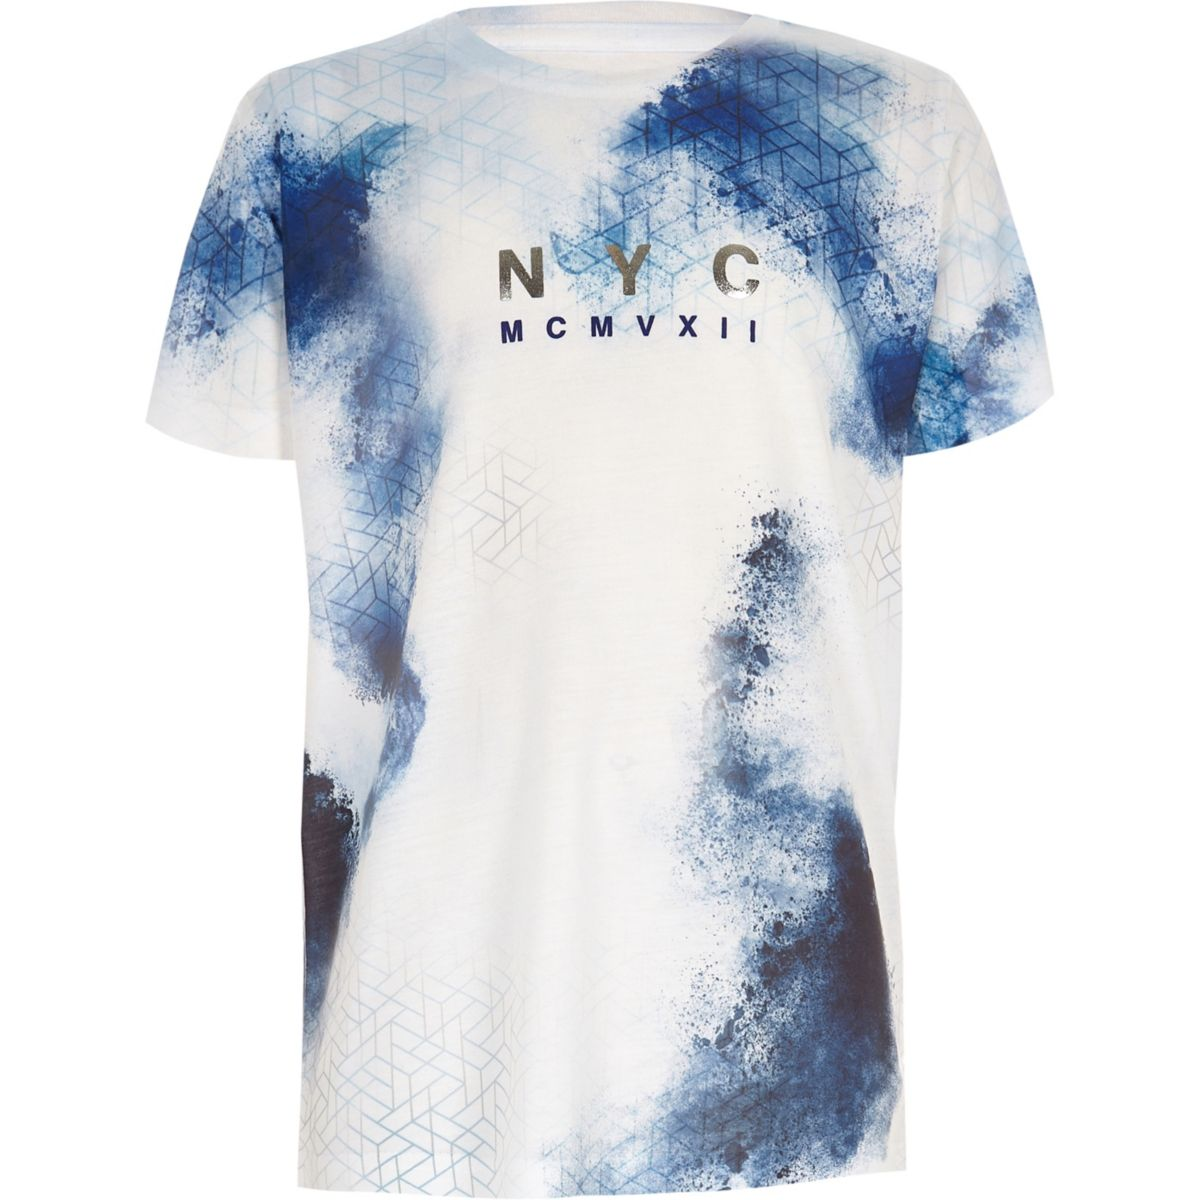 Boys white and blue smudge T-shirt